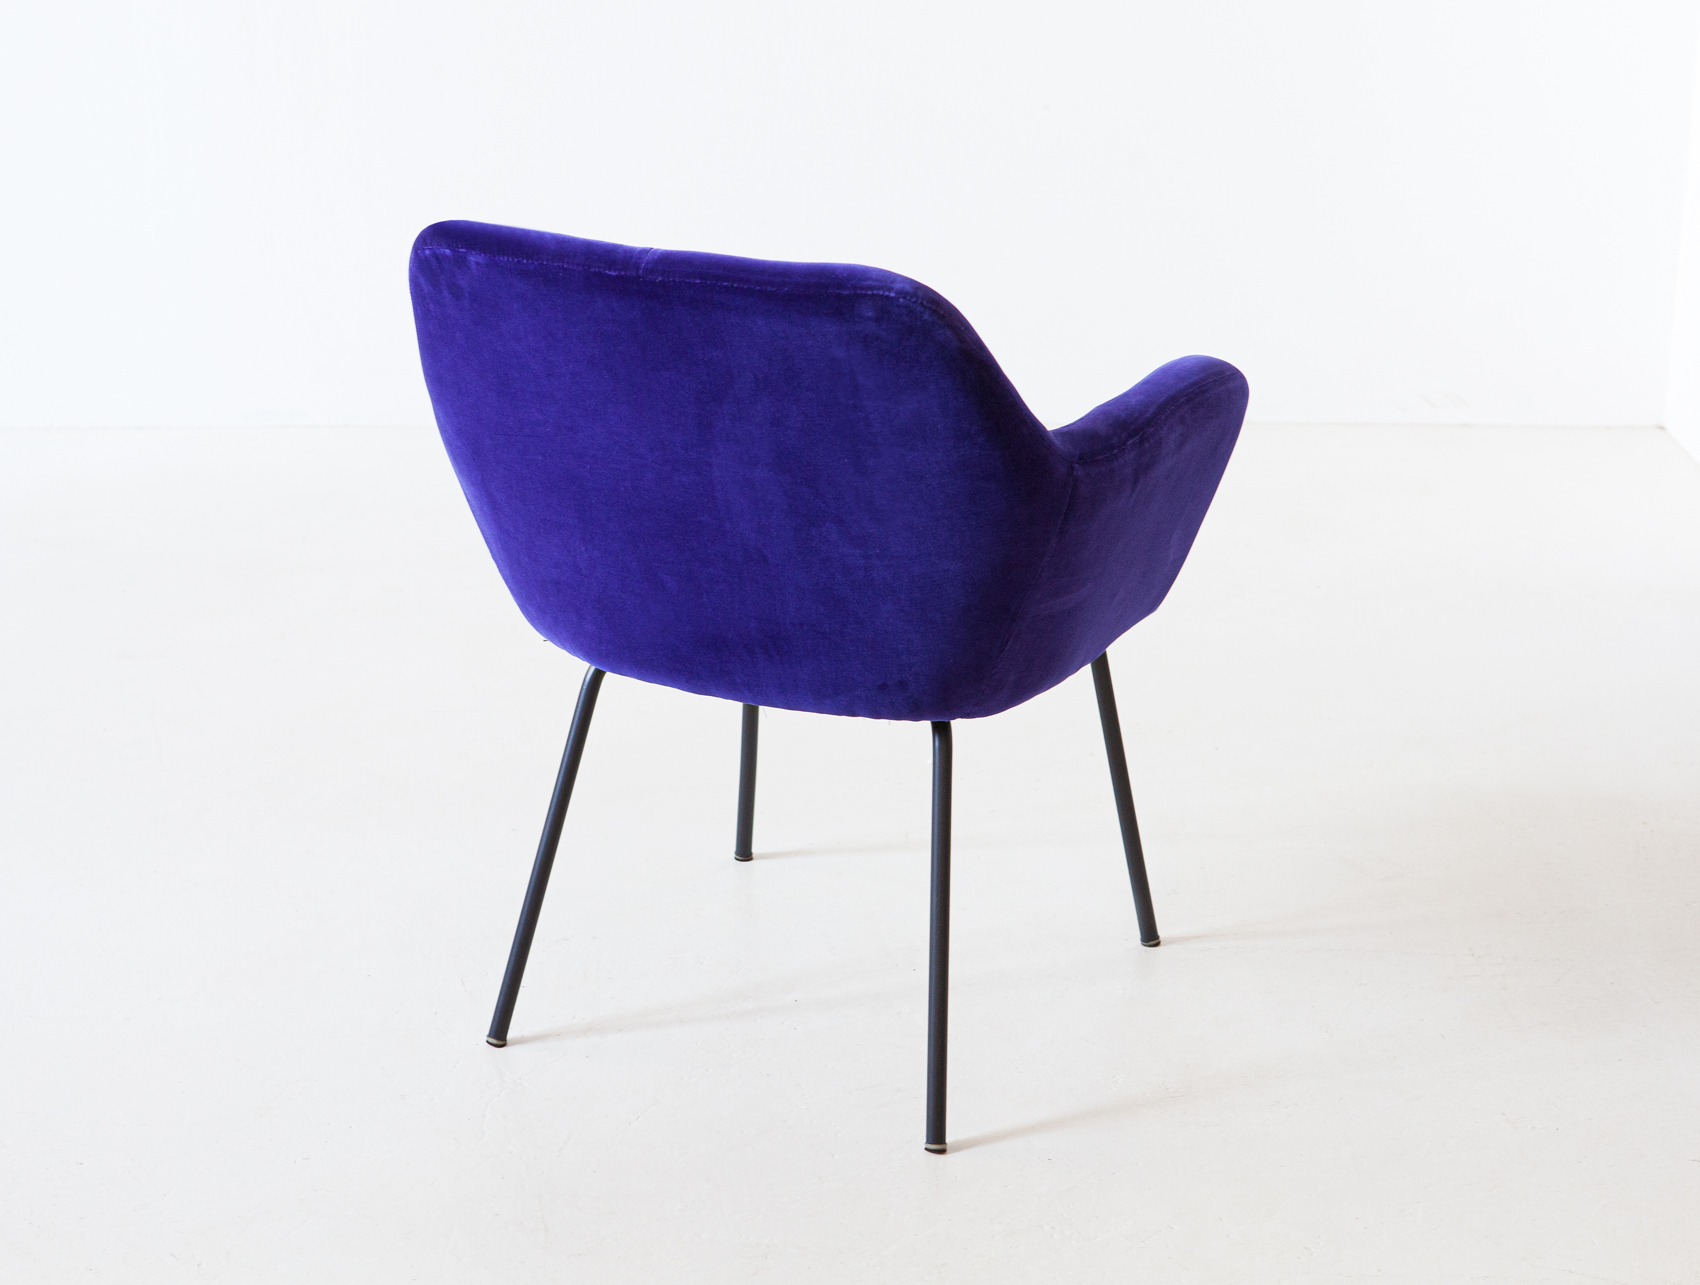 1950s-purle-velvet-armchair-by-studio-pfr-for--arflex-3-se318